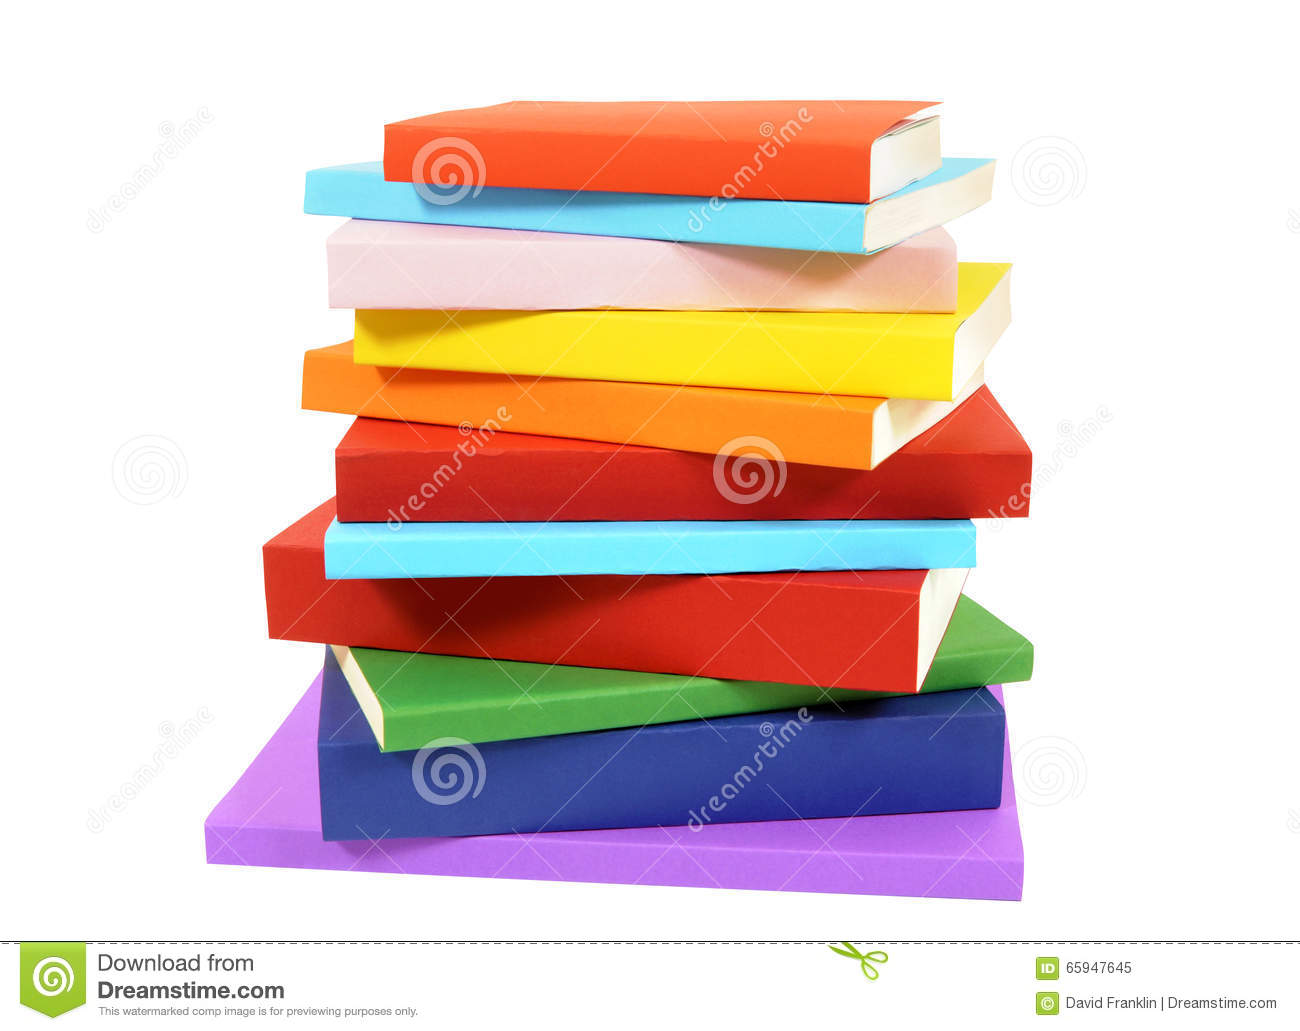 Closeup untidy small pile of books isolated on white background